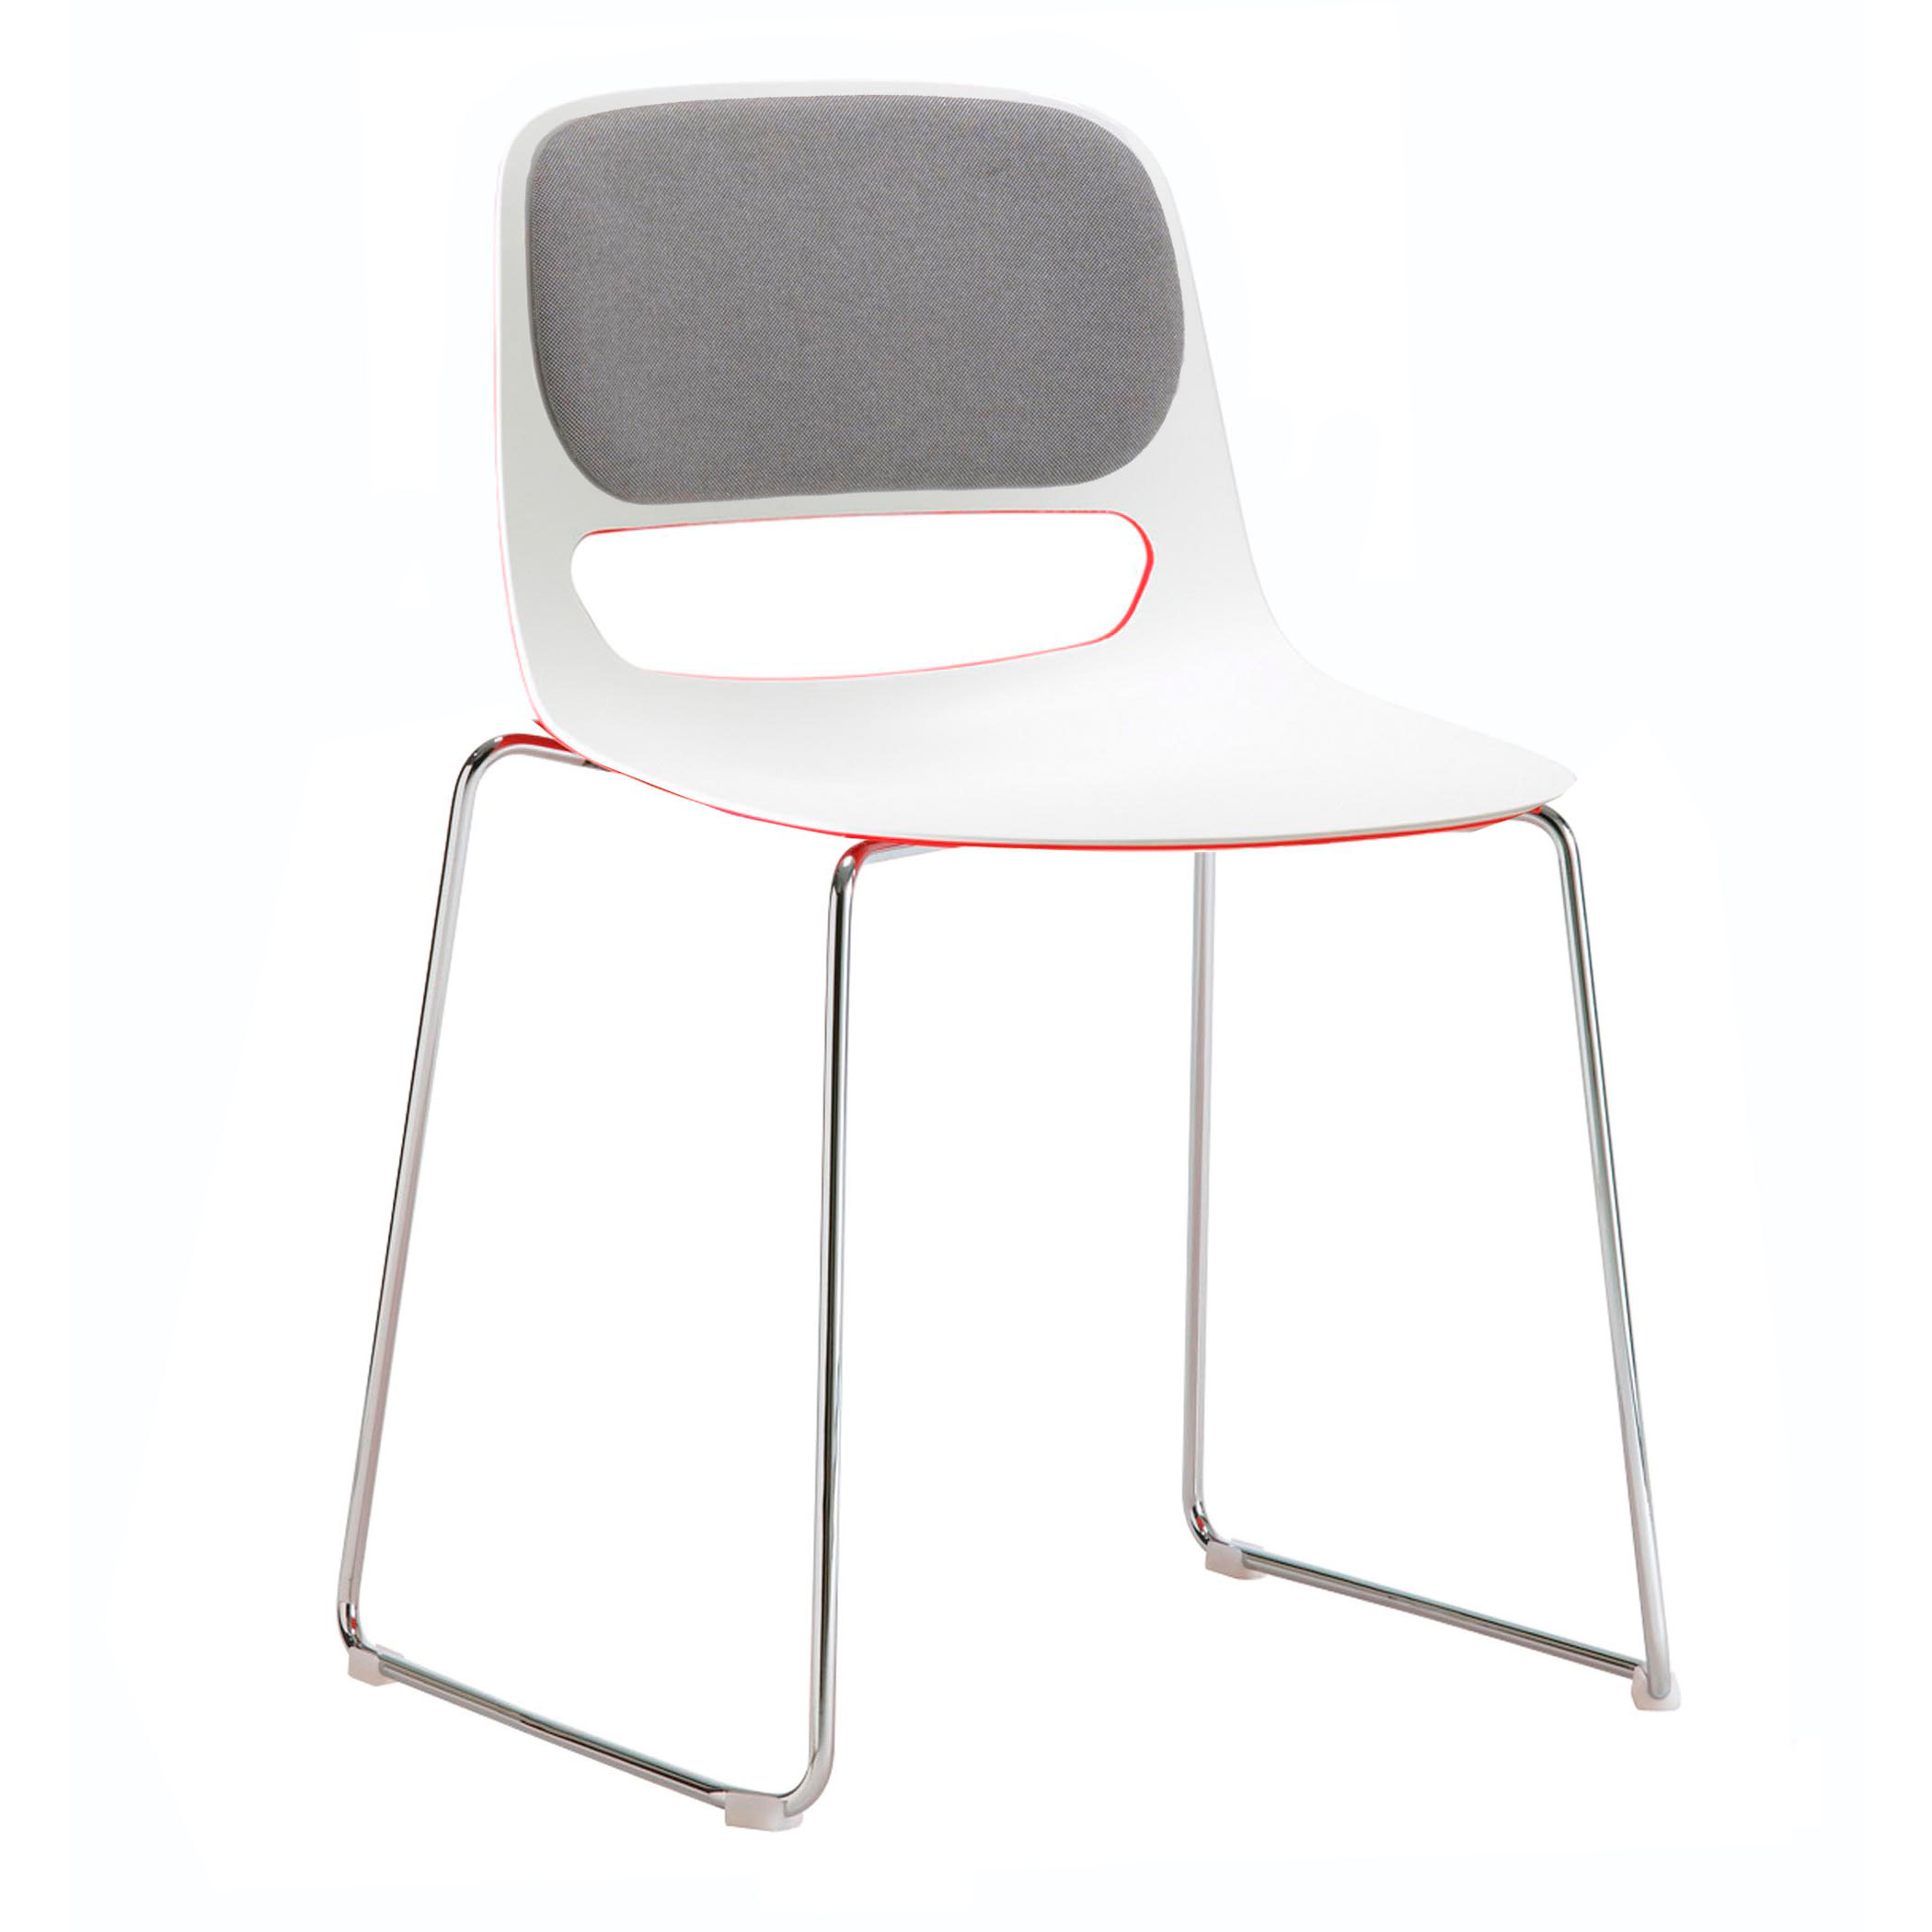 GT709 Sled Base Chair. SHARE. LOW RES HI RES FAVORITES PRINT